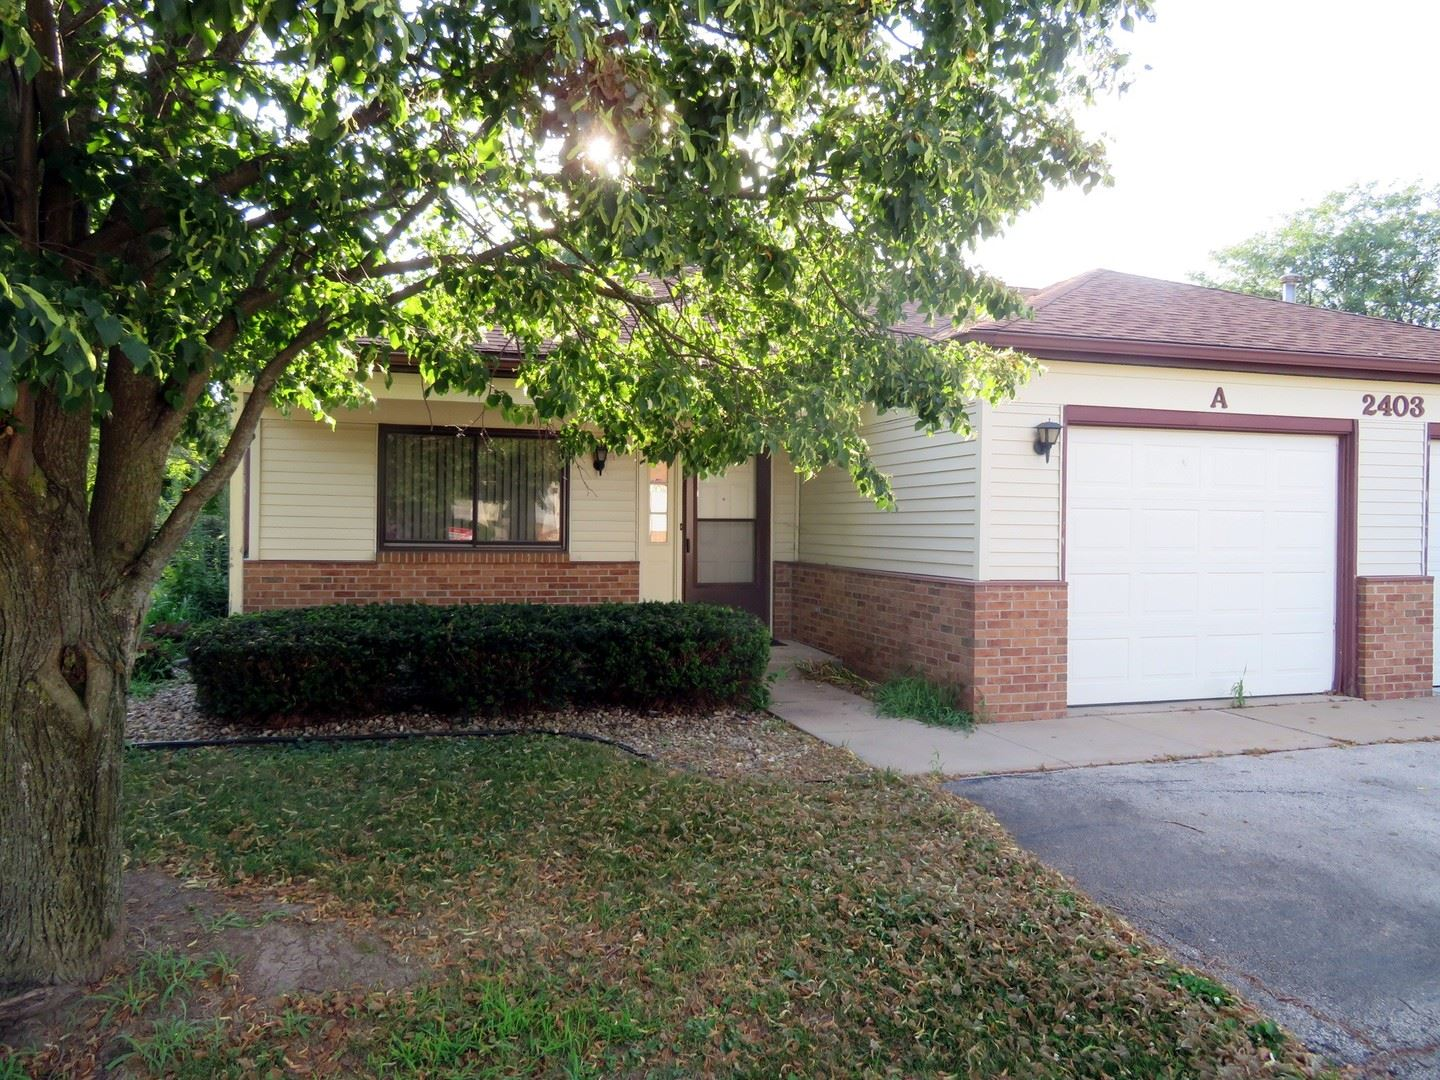 2403 Coventry Court #A, Sterling, IL 61081 - #: 10507460